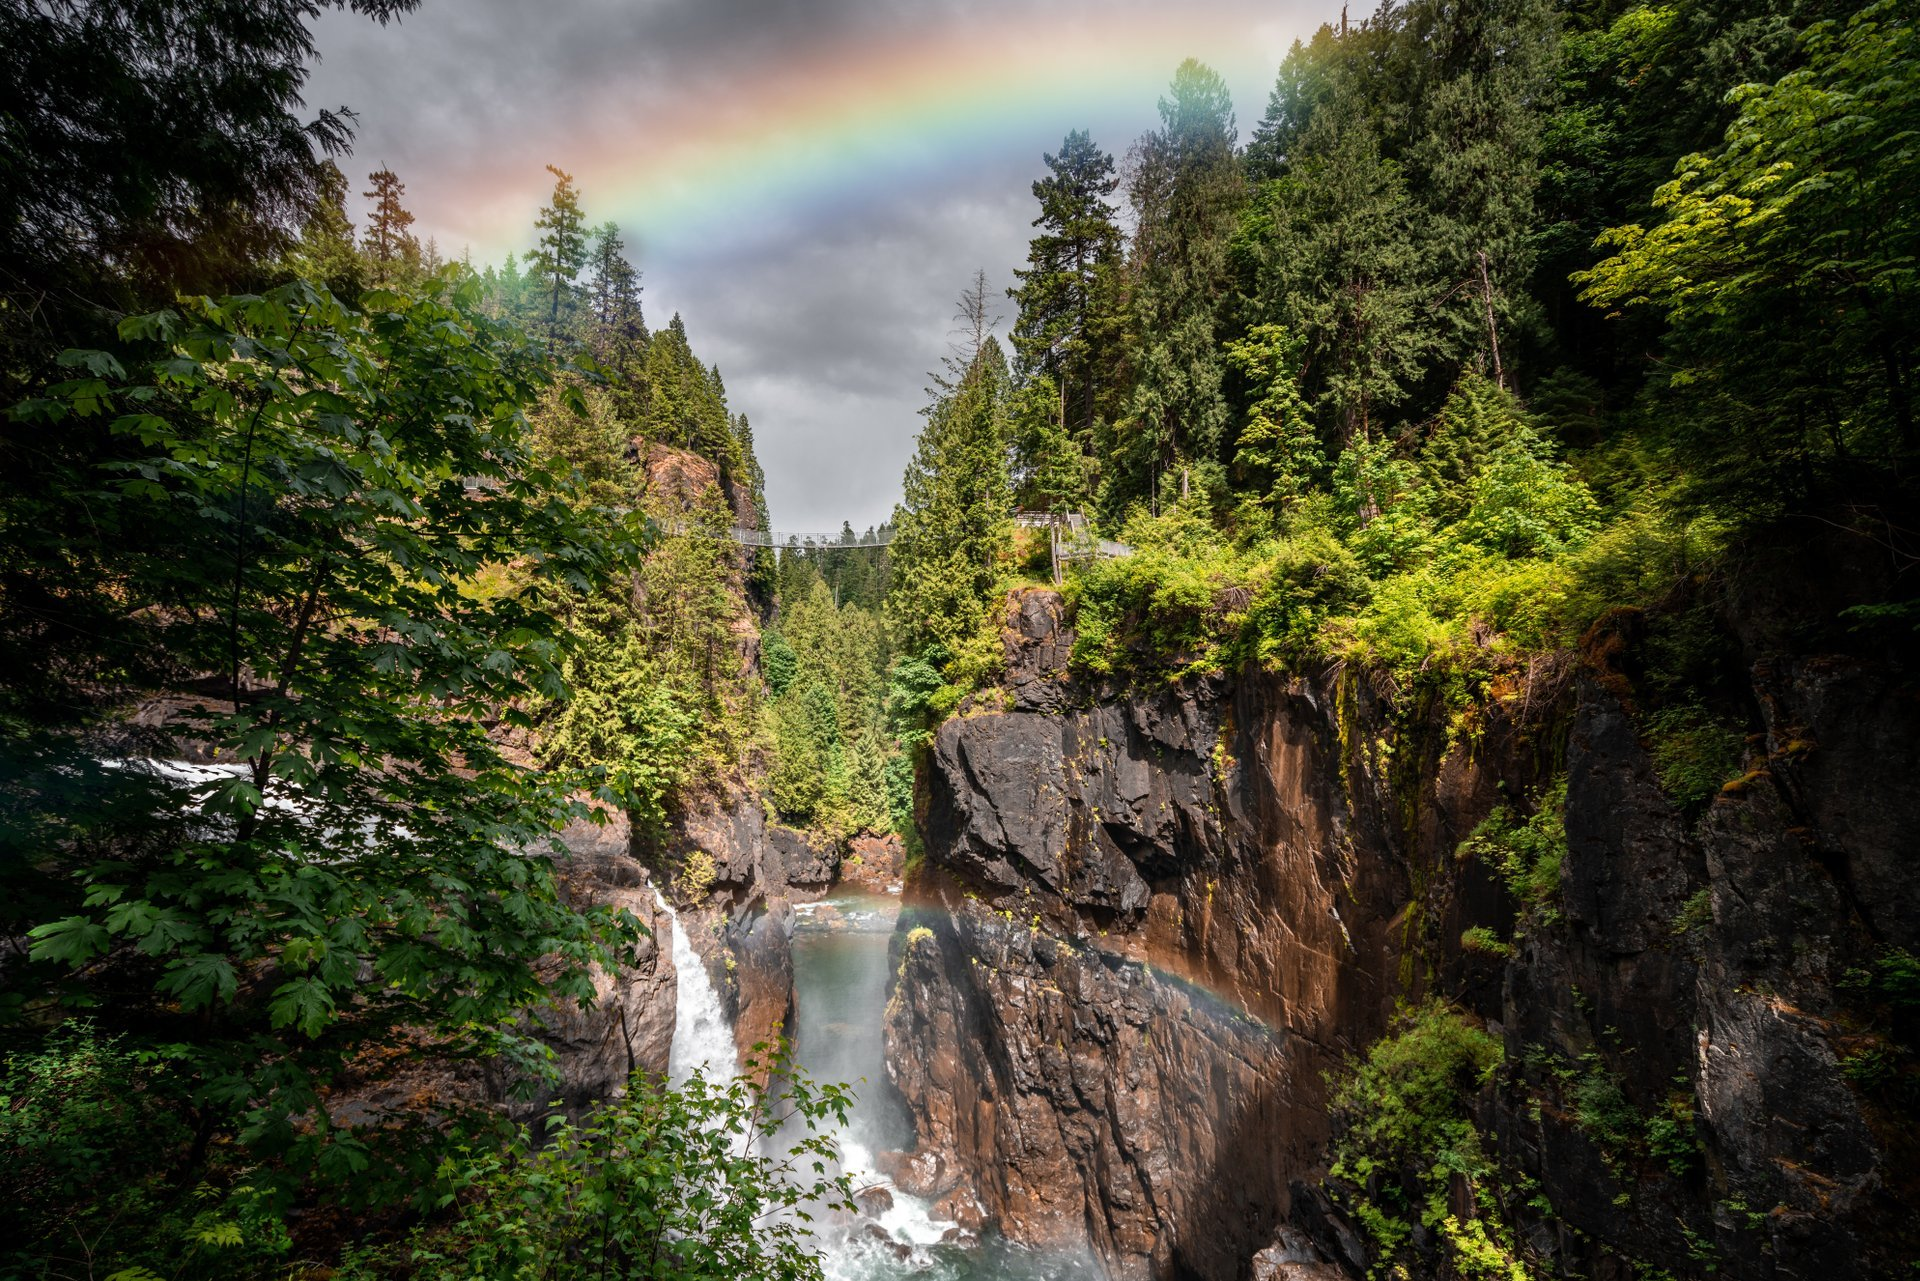 Elk Falls cascades 25 metres, making for some stunning photos. Image Credit: Tyler Cave